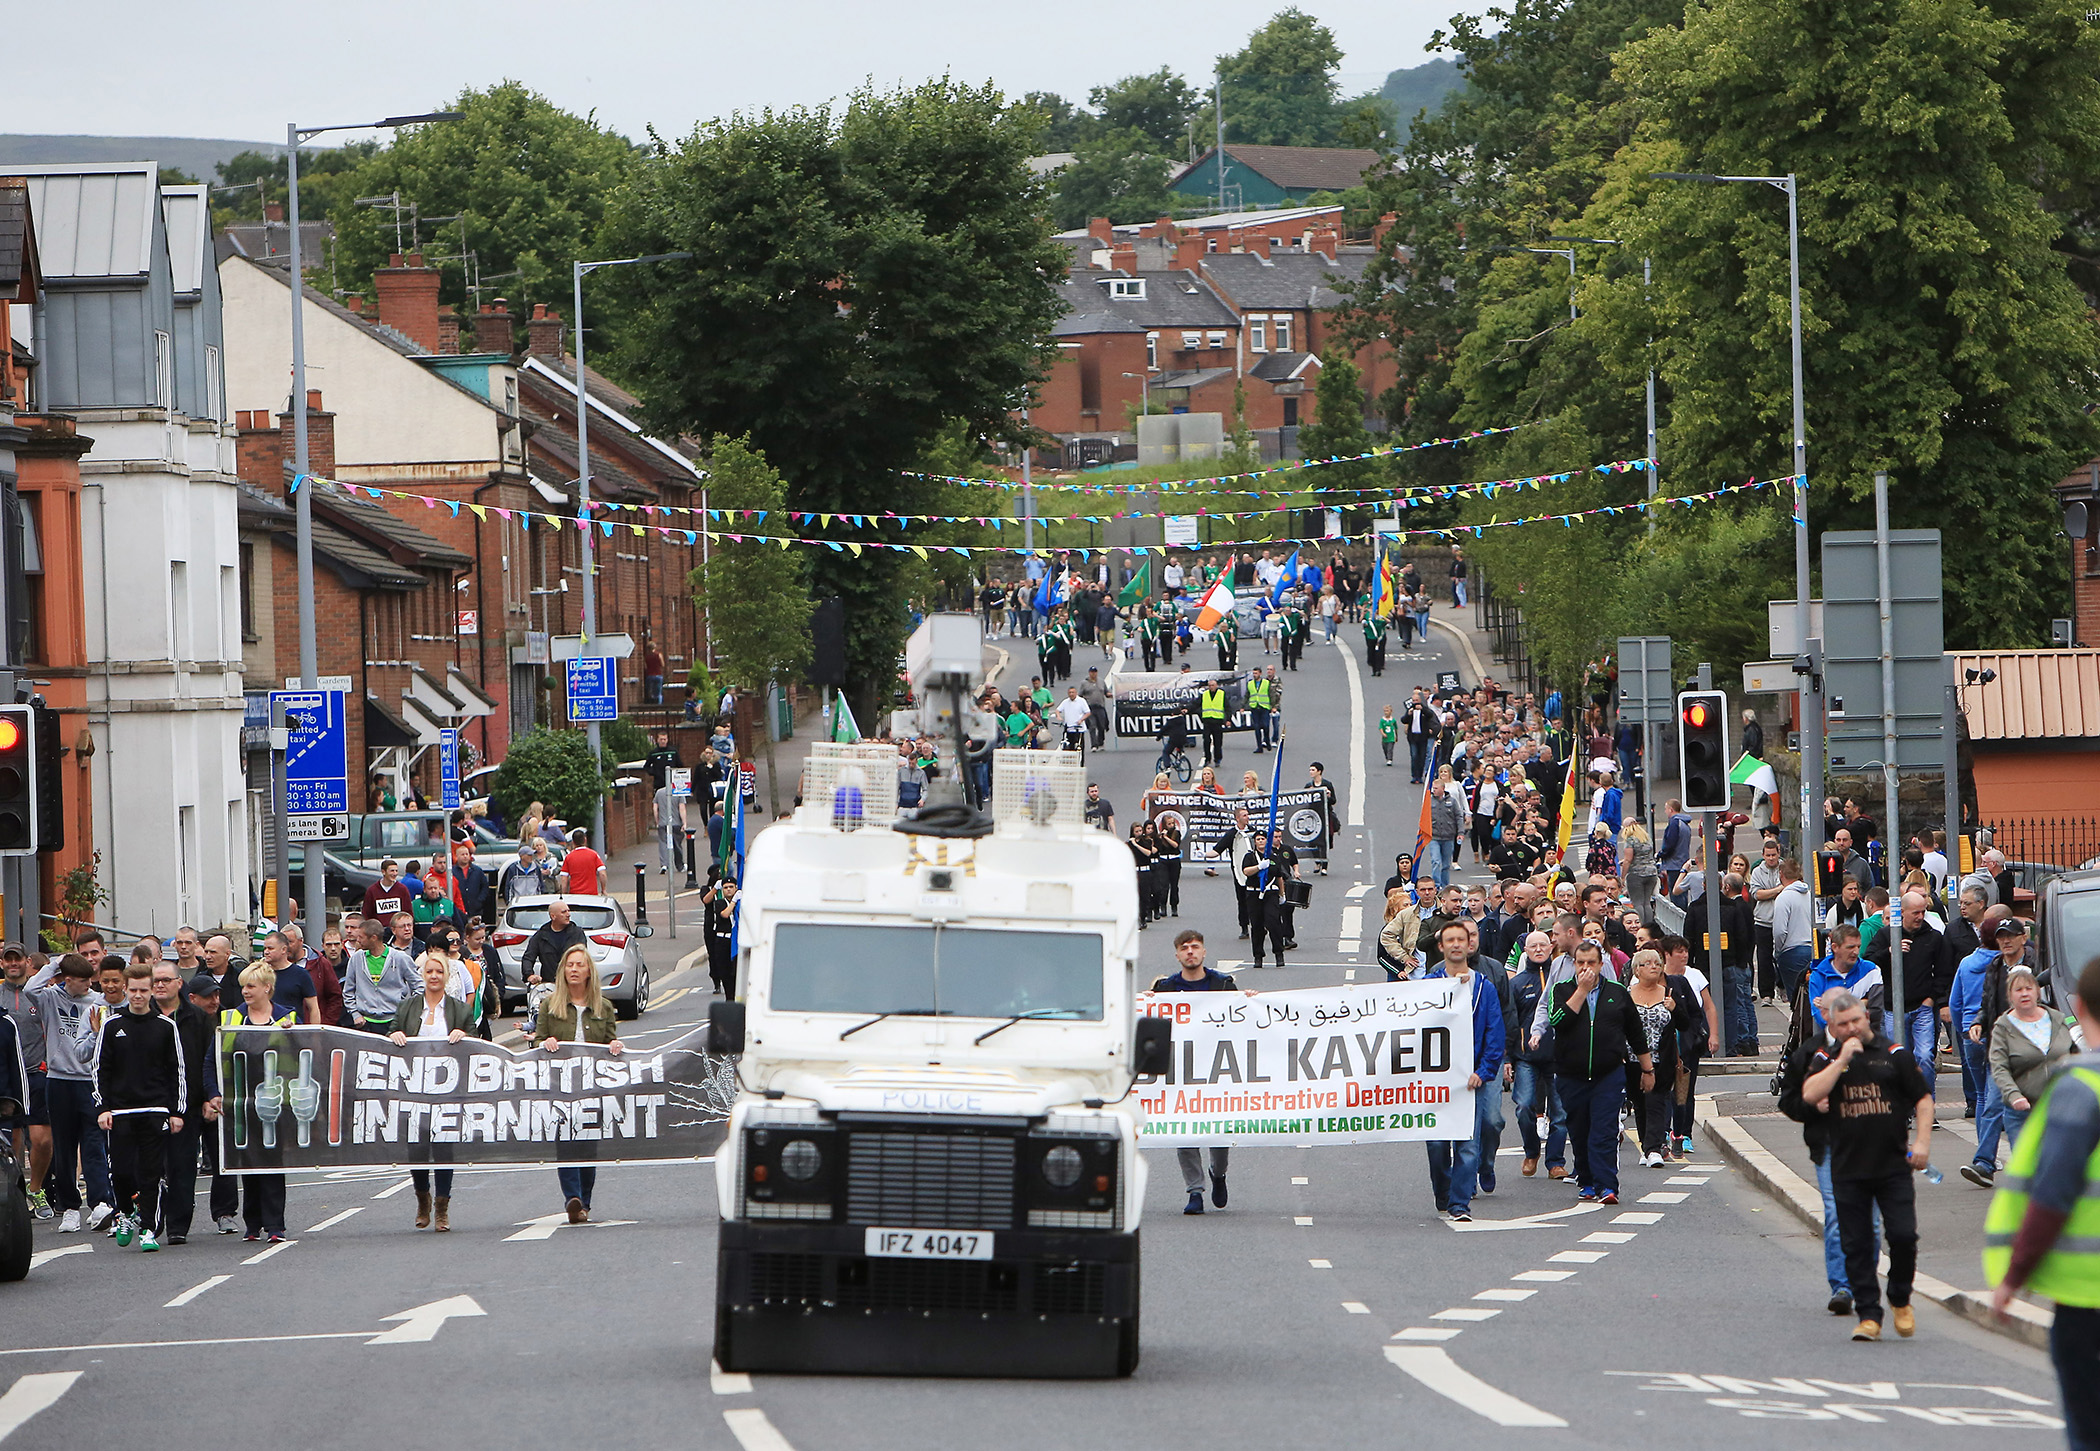 This year\'s nti-internment parade will return to North Belfast but is to be restricted 0708JC16